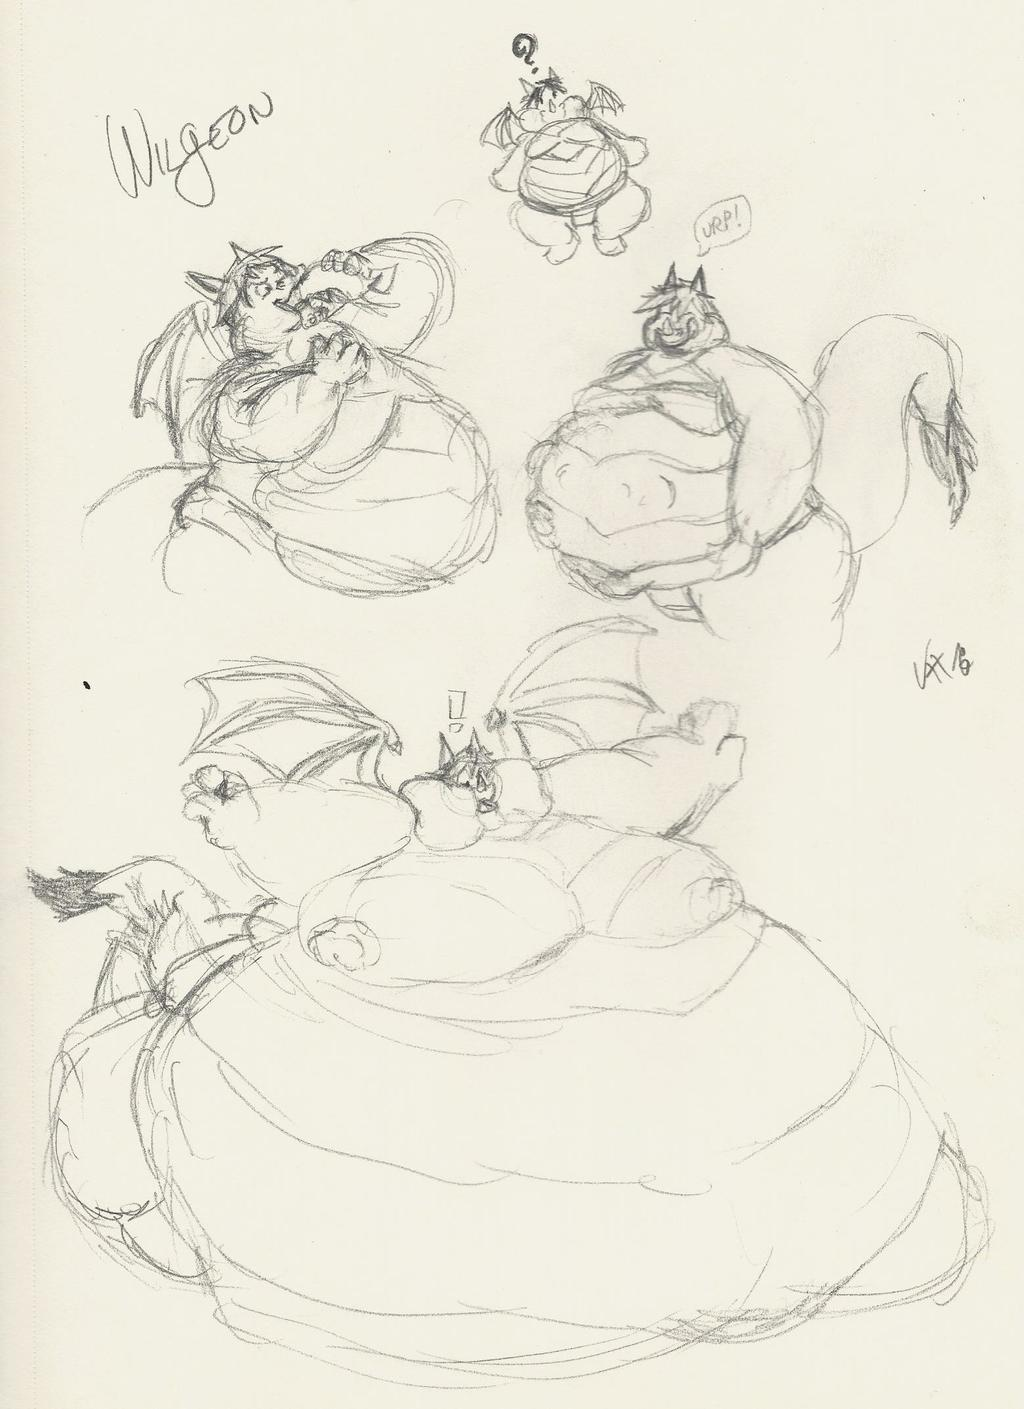 Wilgeon sketchpage